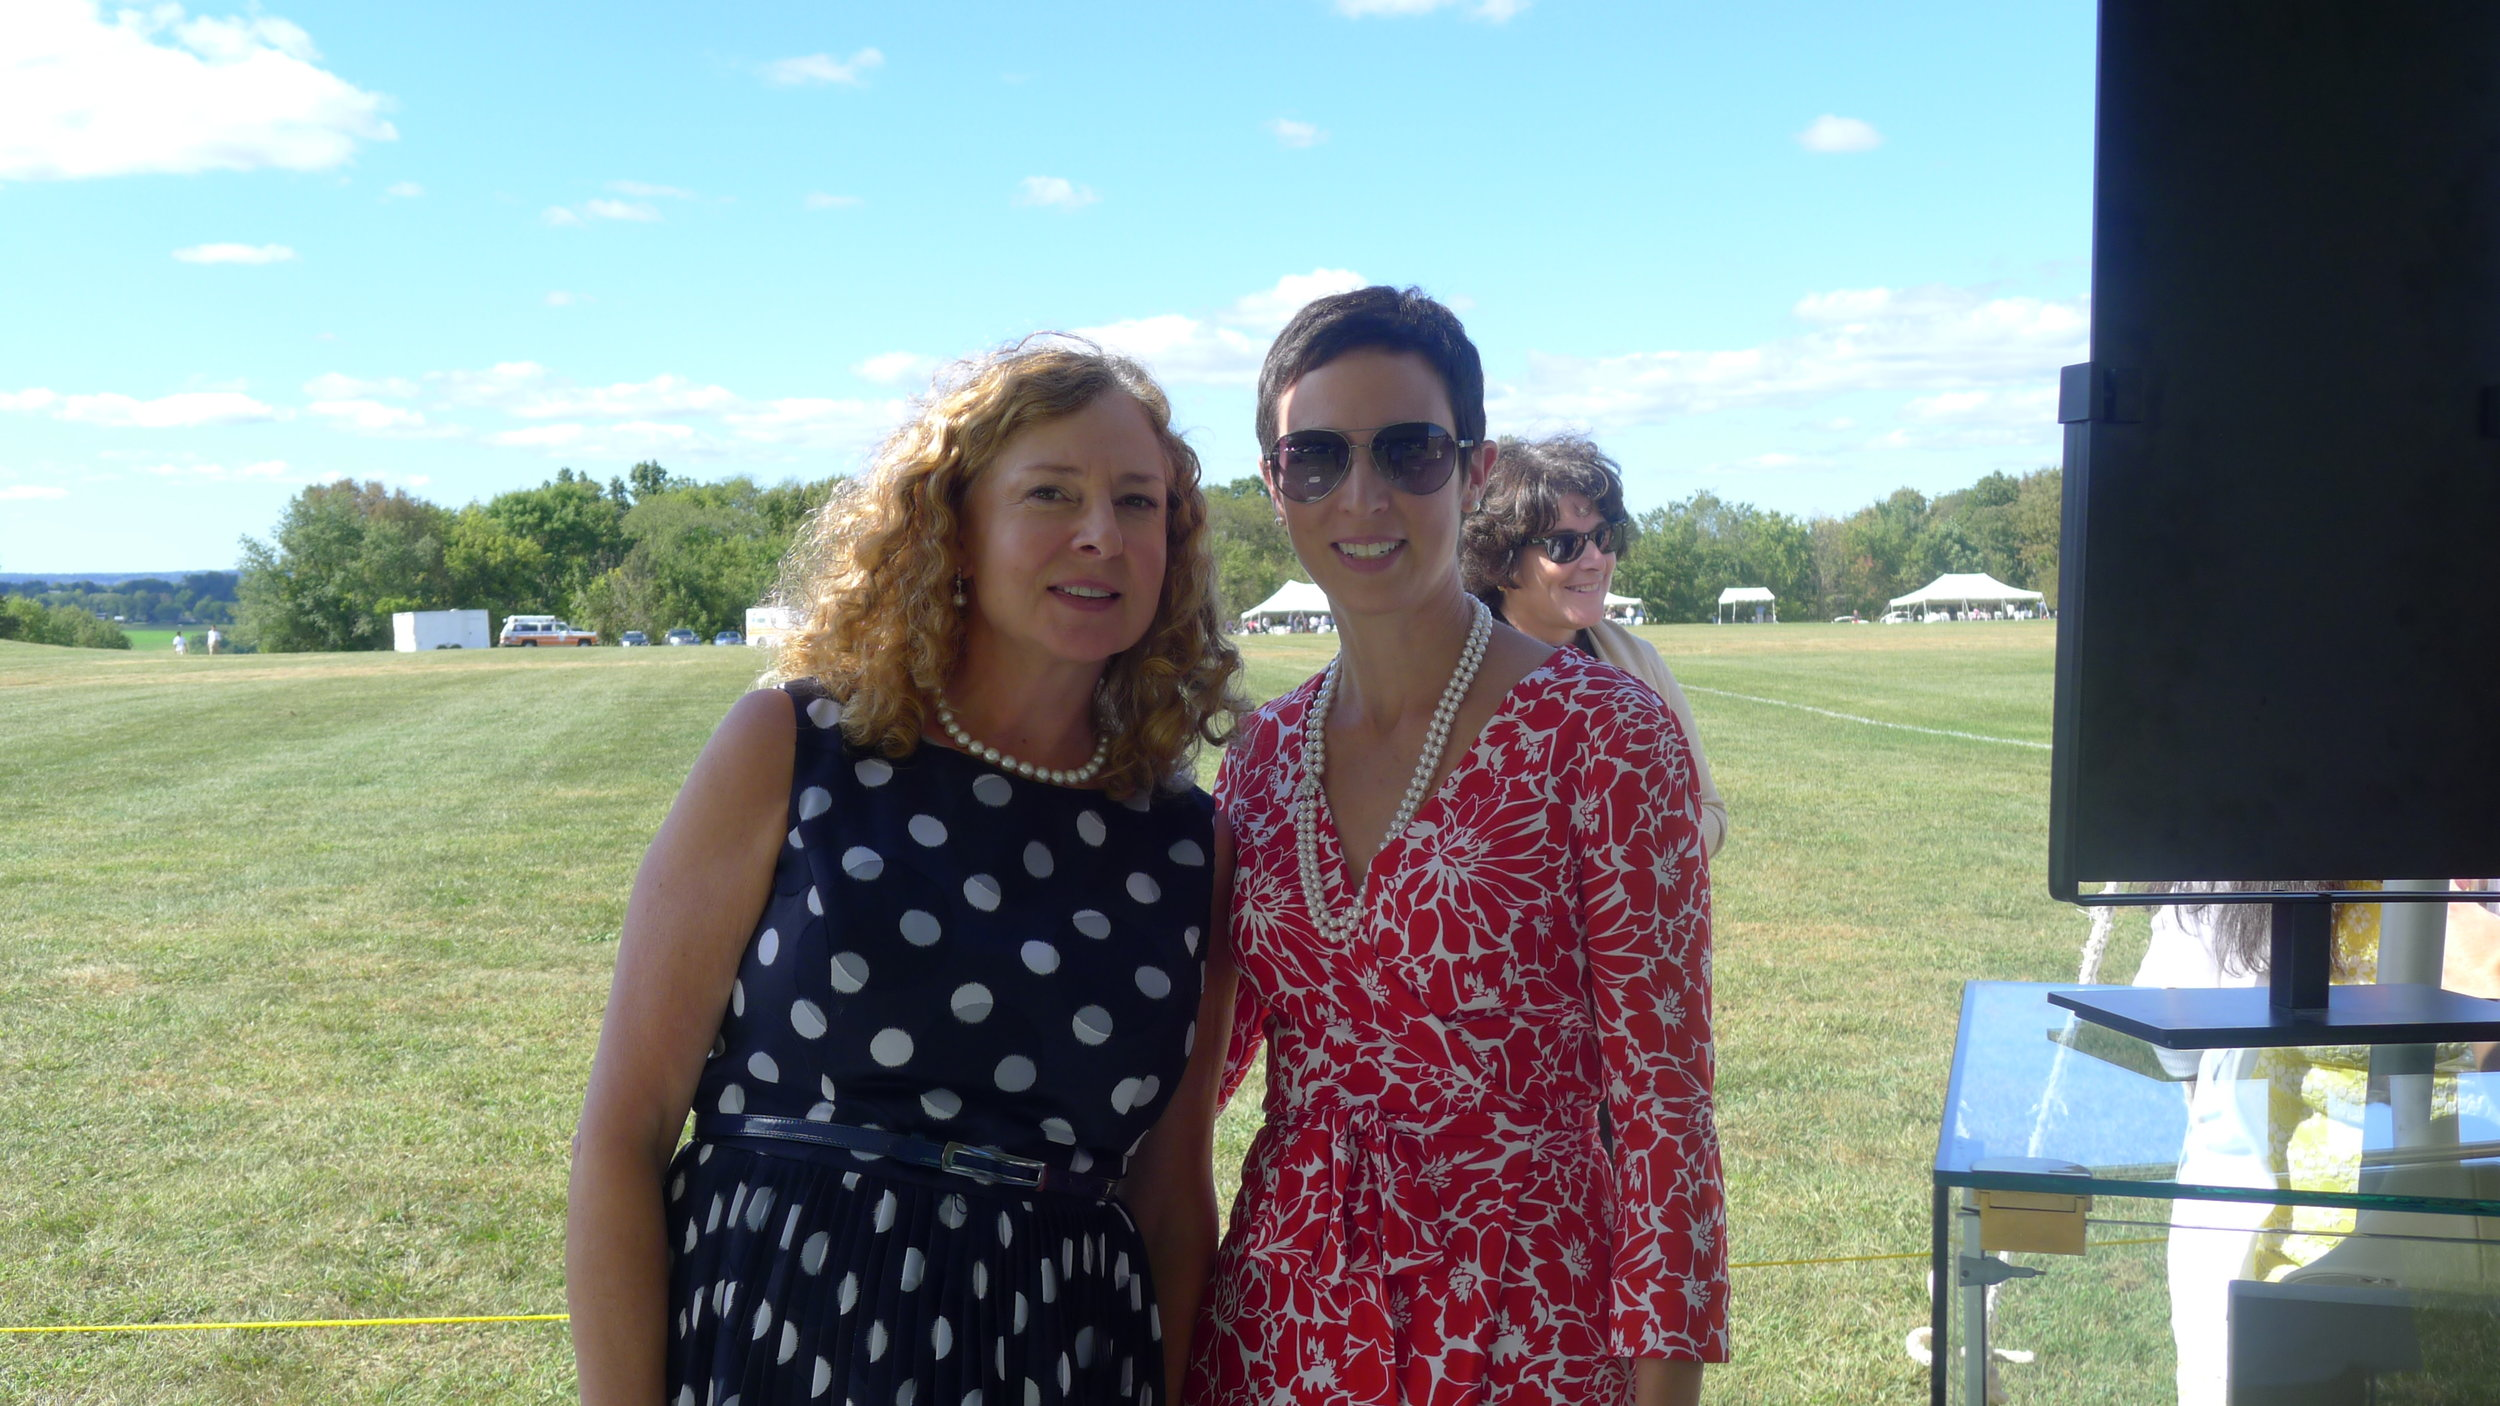 Suzanne Foster with Wendy, modeling our classic double strand pearl necklace in her perfect afternoon polo dress.